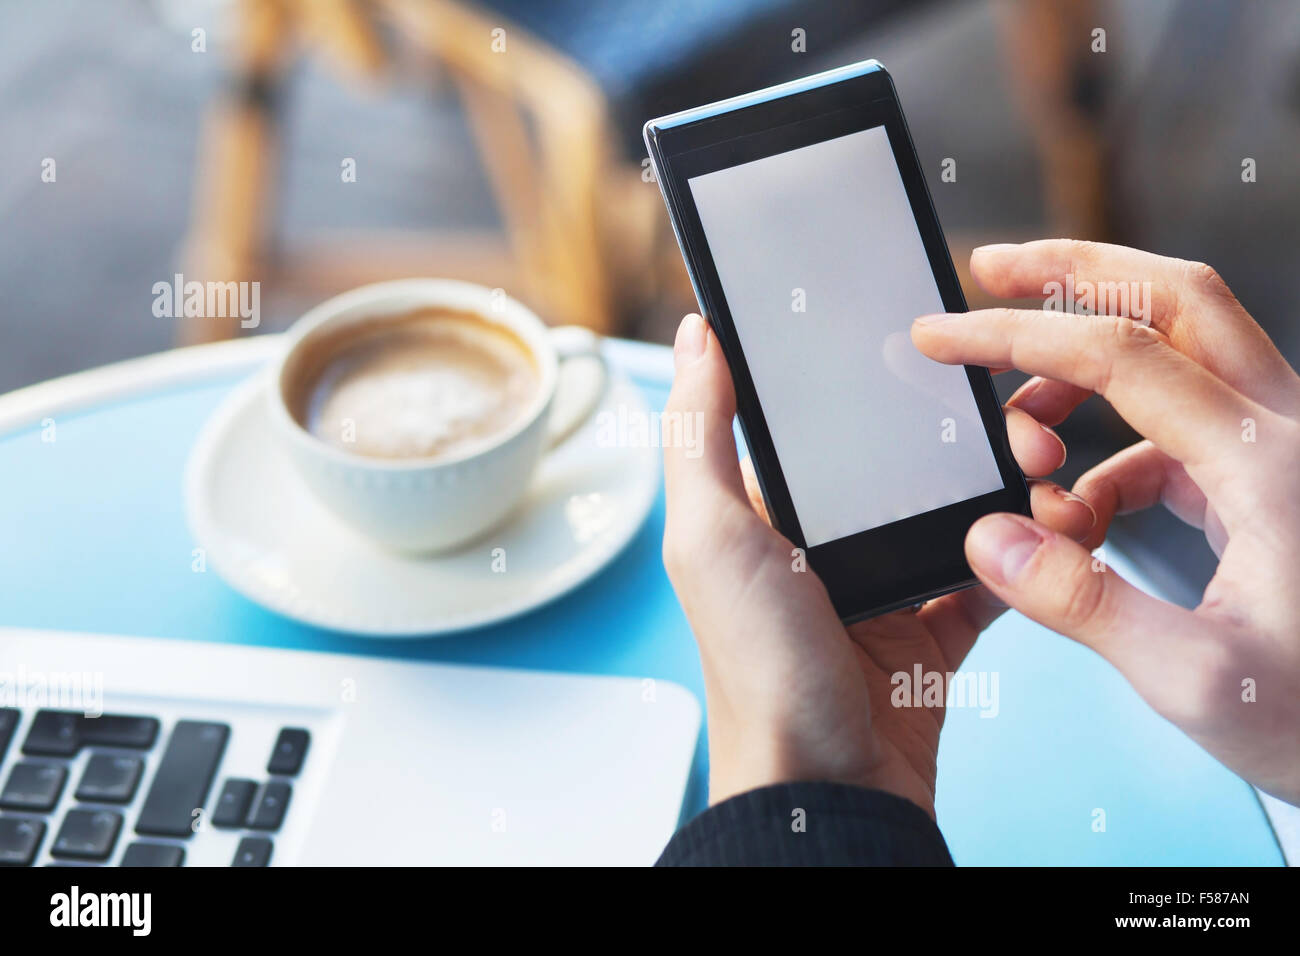 hands with smart phone and cup of coffee - Stock Image